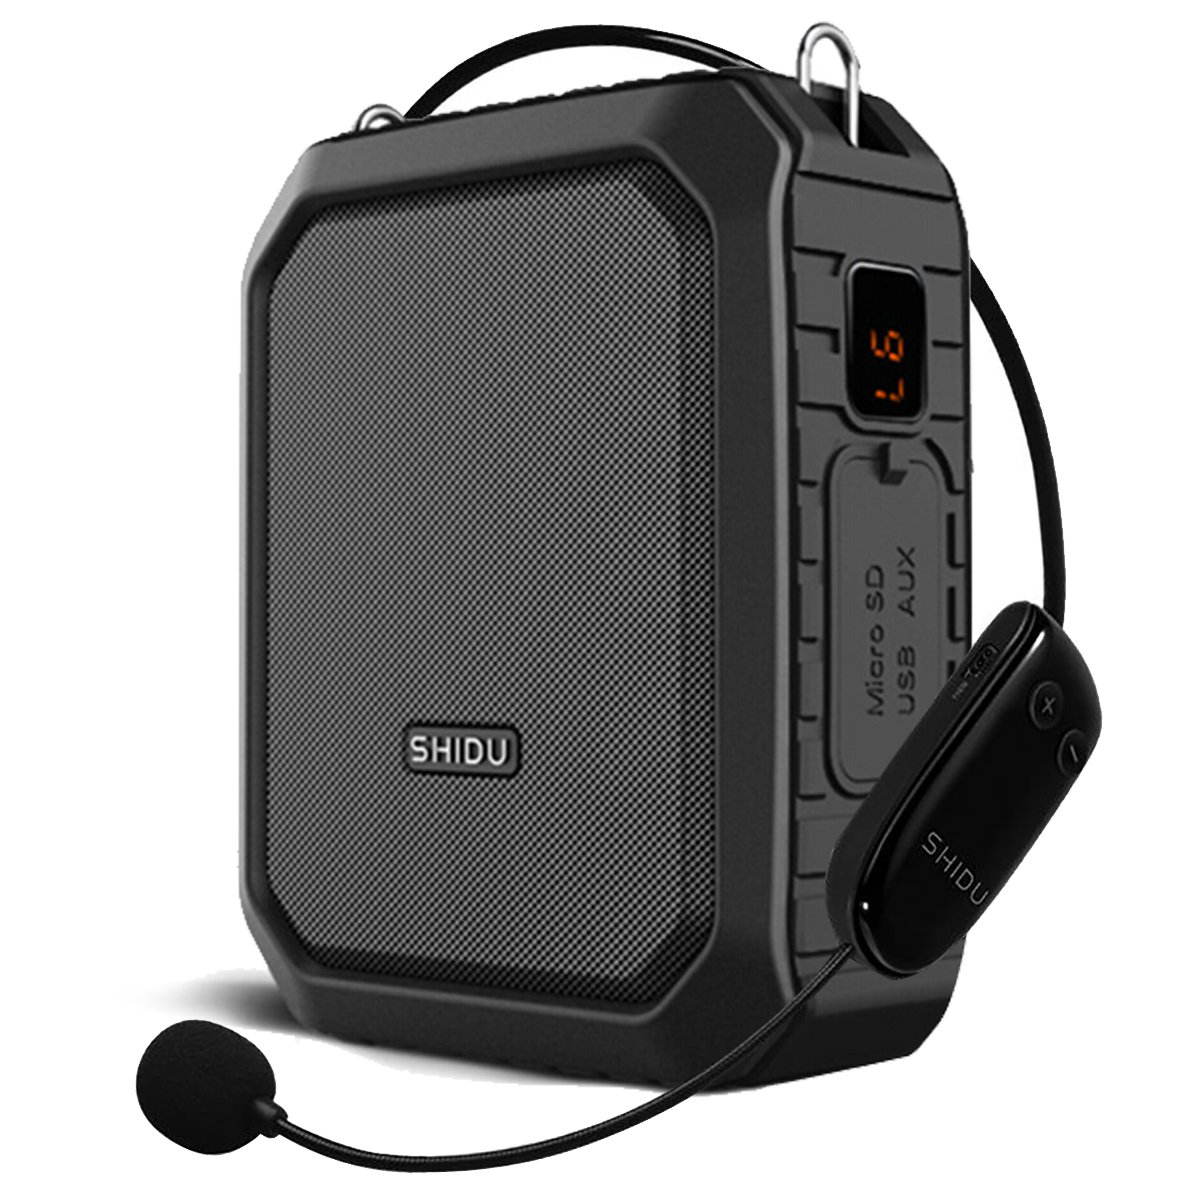 Voice Amplifier Bluetooth Loudspeaker with Wire Headset Mic, Voice Saver Waterproof Personal 18 Watts Big Power Pa System for Outdoor/Teachers/ Yoga Instructors/Coaches/ Elderly/Tour Guide (Black) SHIDU Digital RB-800